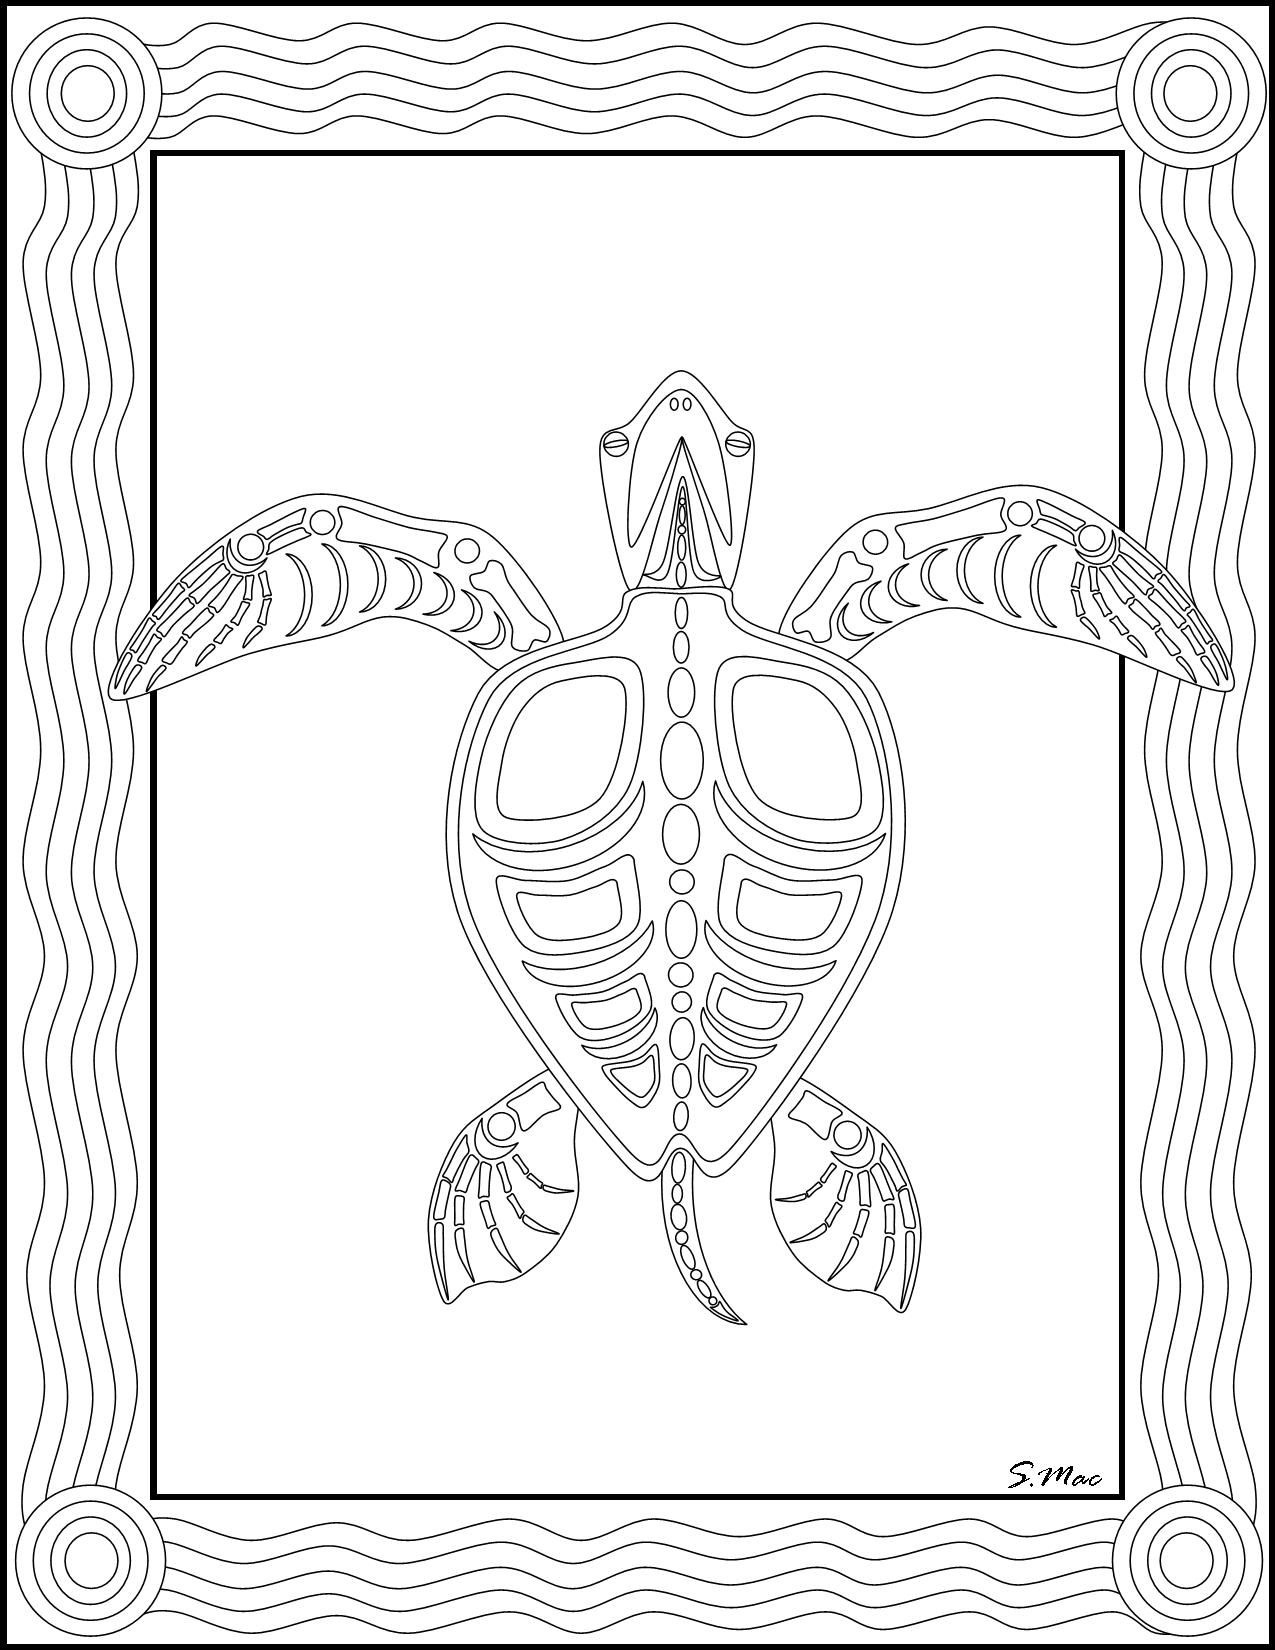 S.mac's Sea Turtle X-Ray Art Coloring Page   Art- Coloring Therapy - Free Printable Aboriginal Colouring Pages